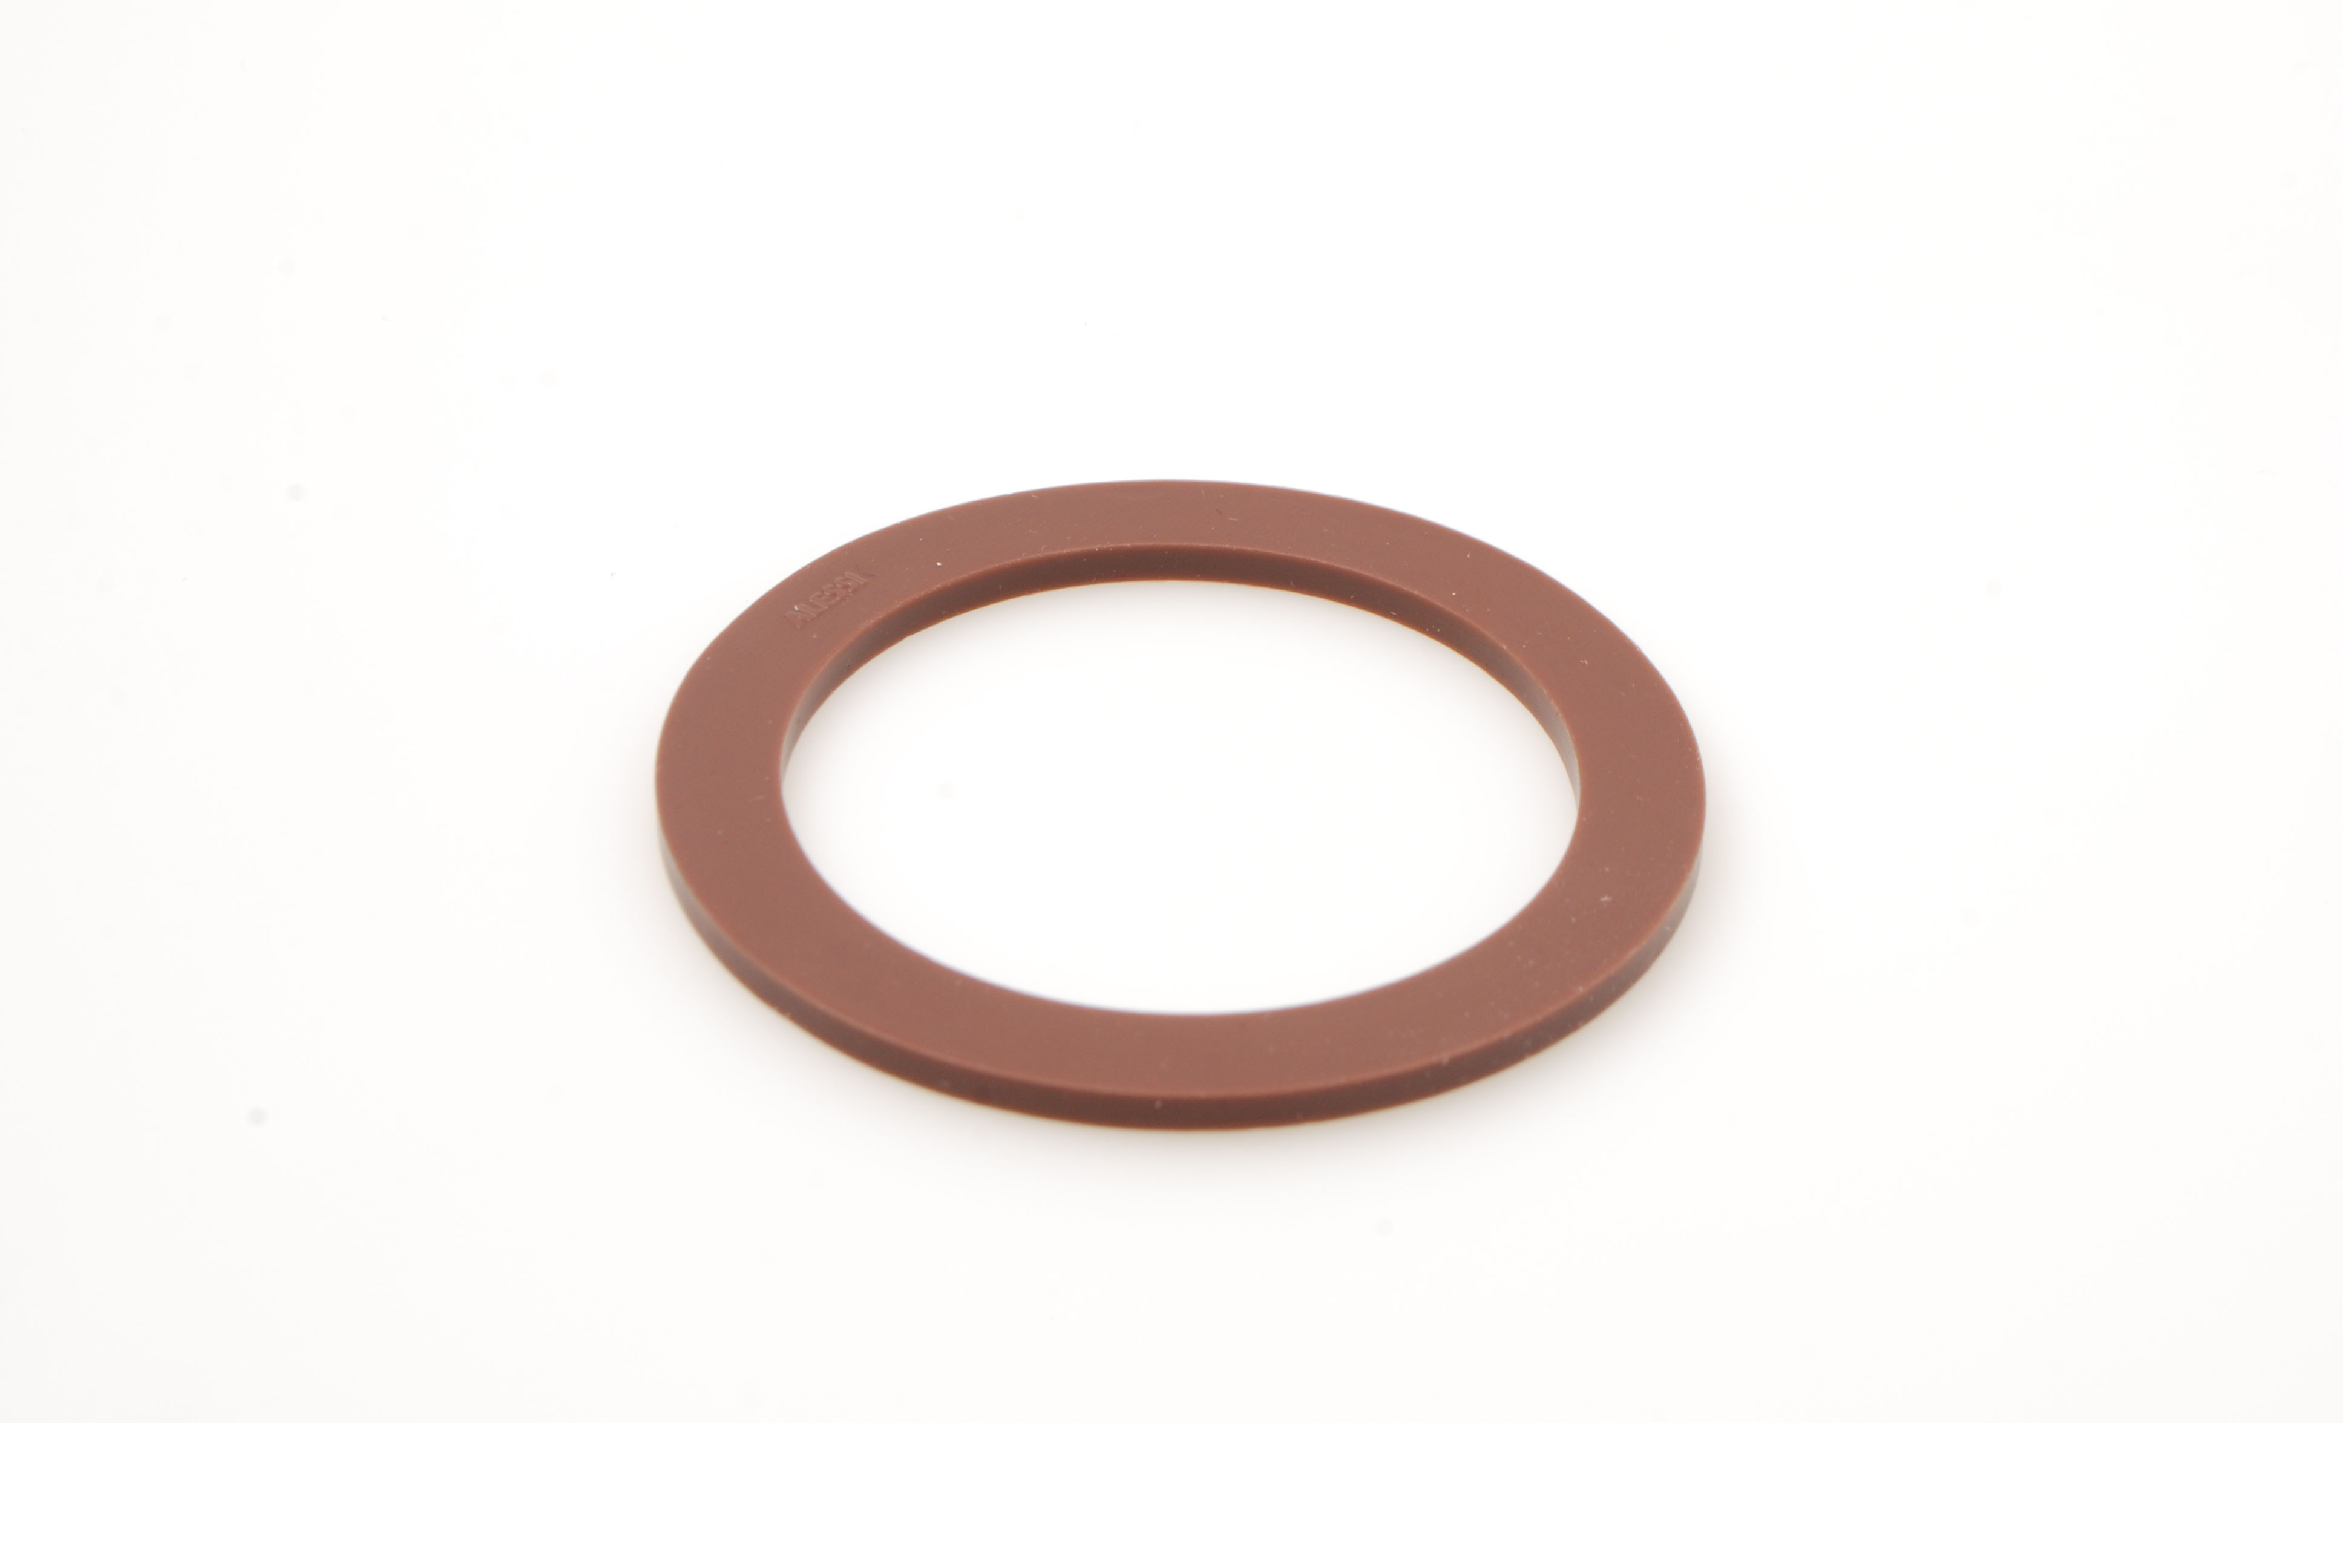 Alessi Rubber ring voor art ARS09/6-PL01/6-A9095/6-MG26/6